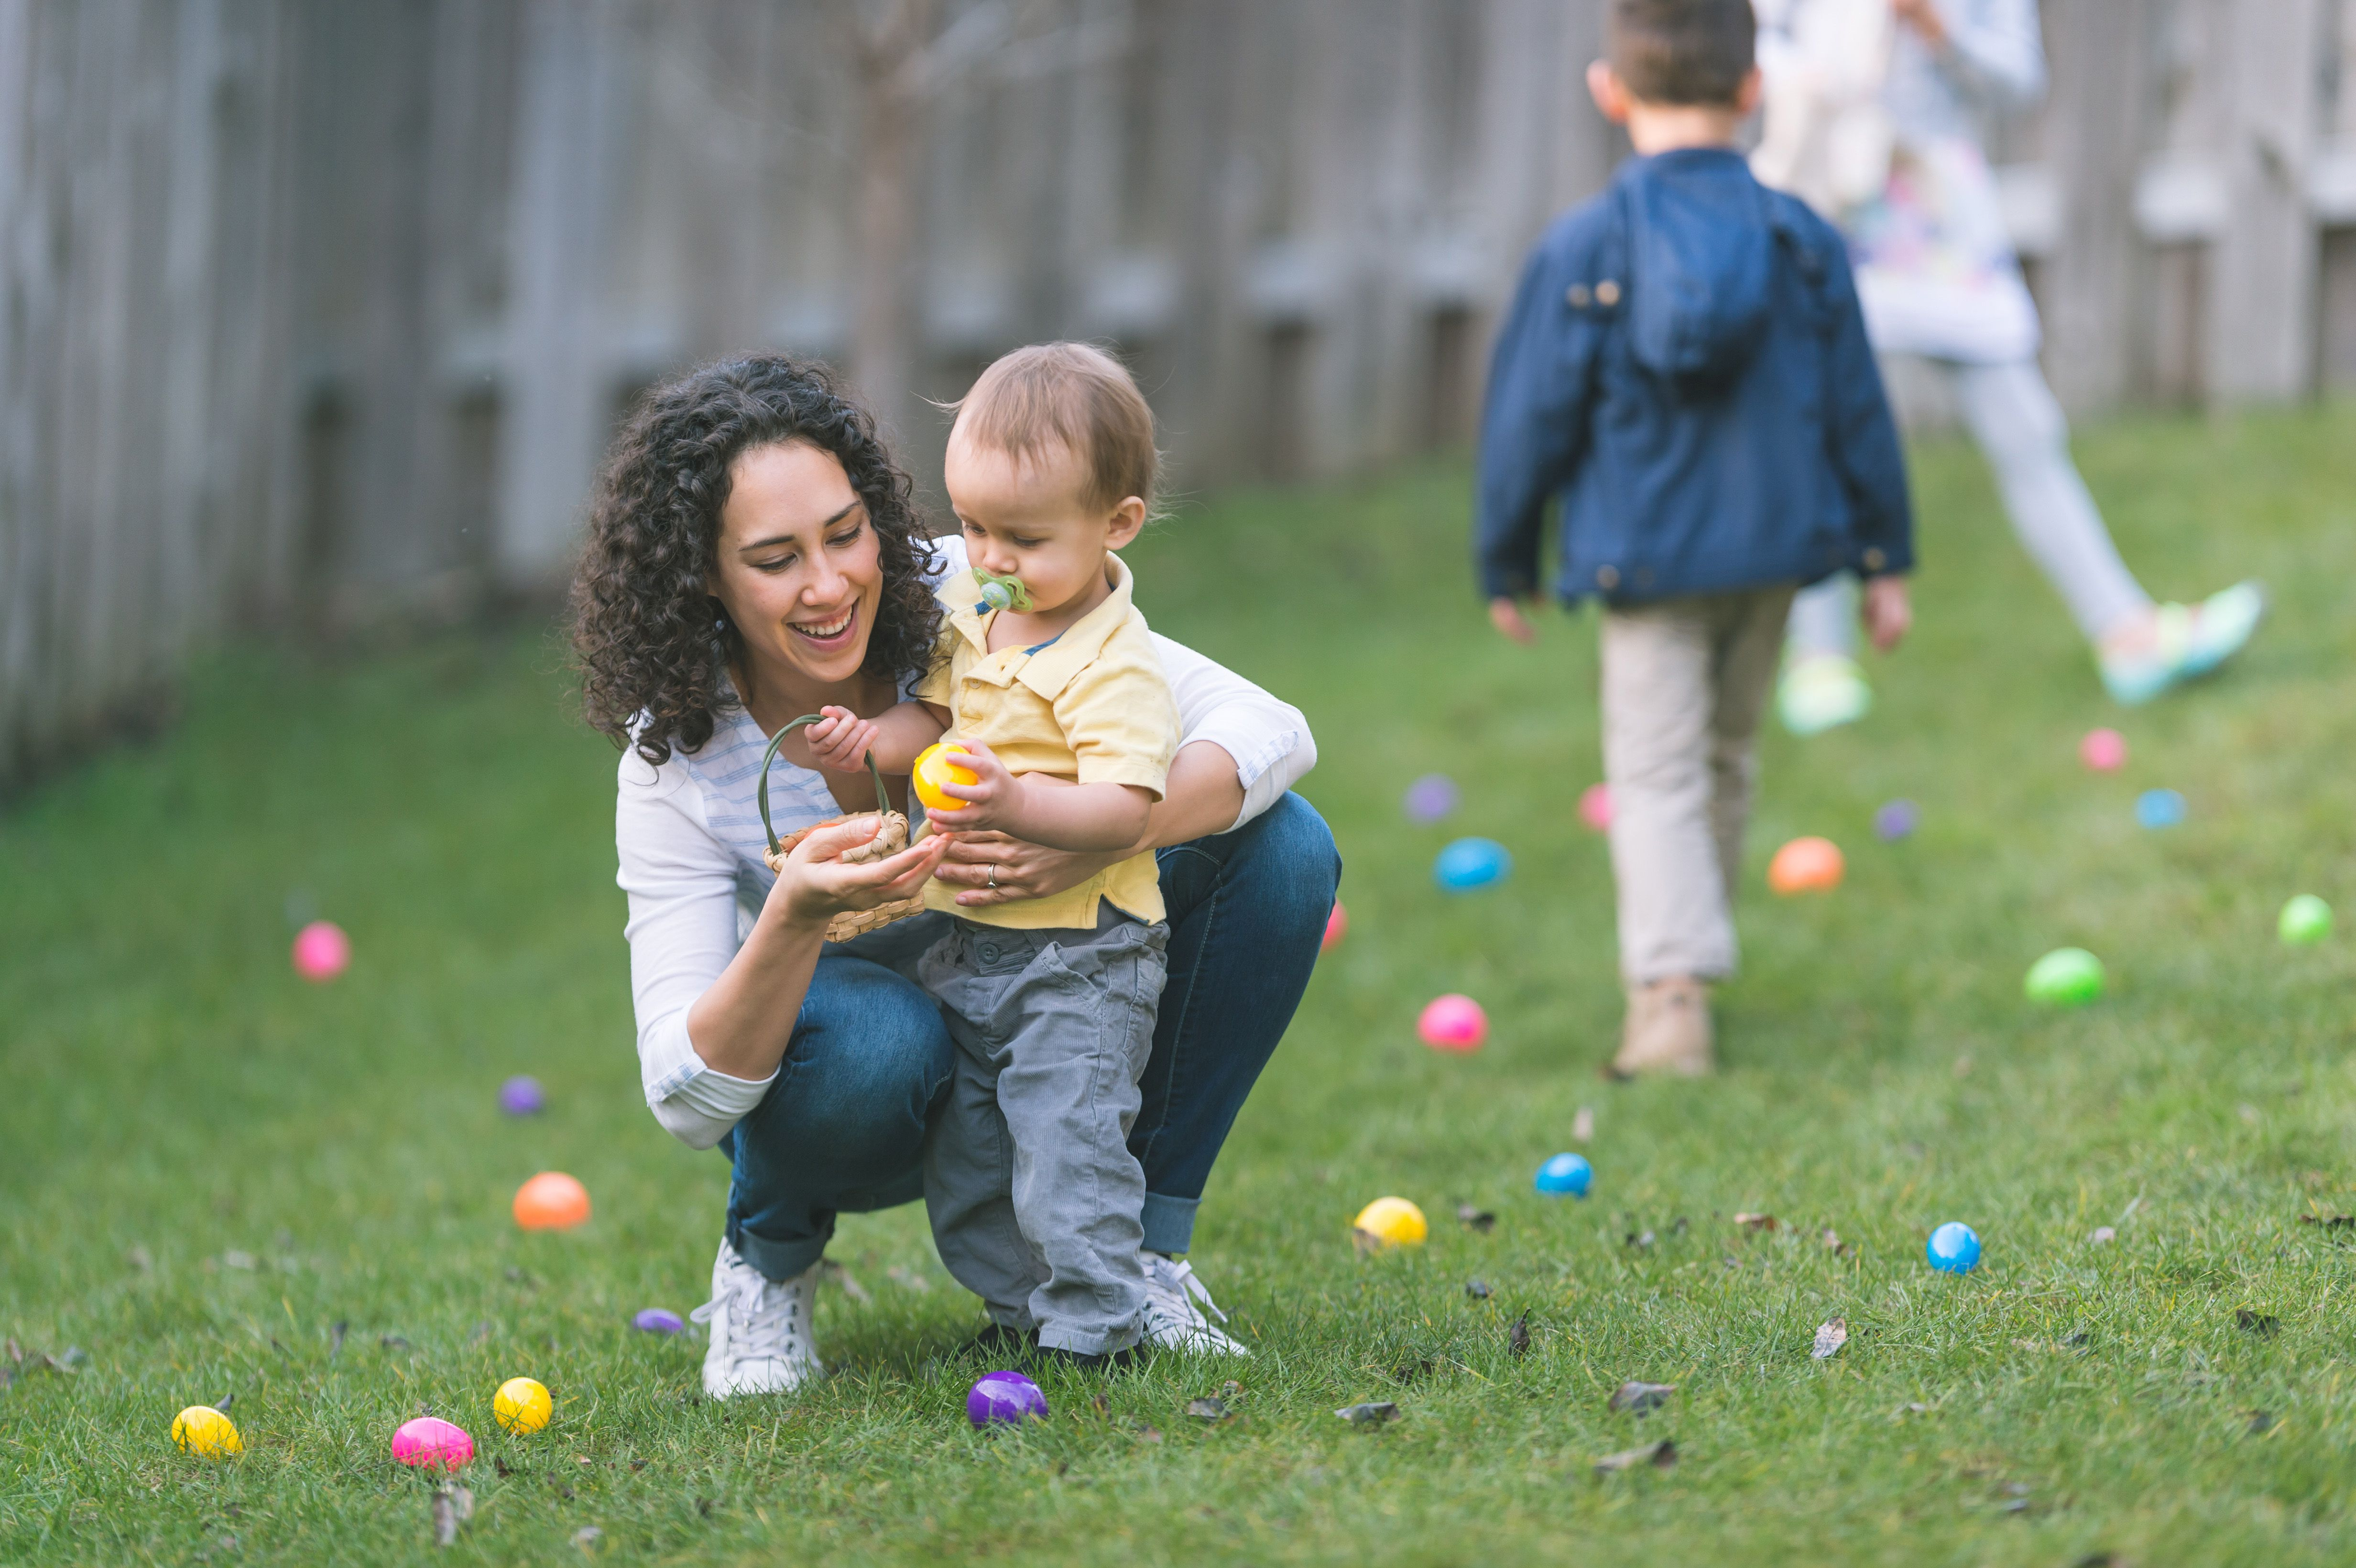 8 Creative Ways for the Perfect Easter With Your Kids